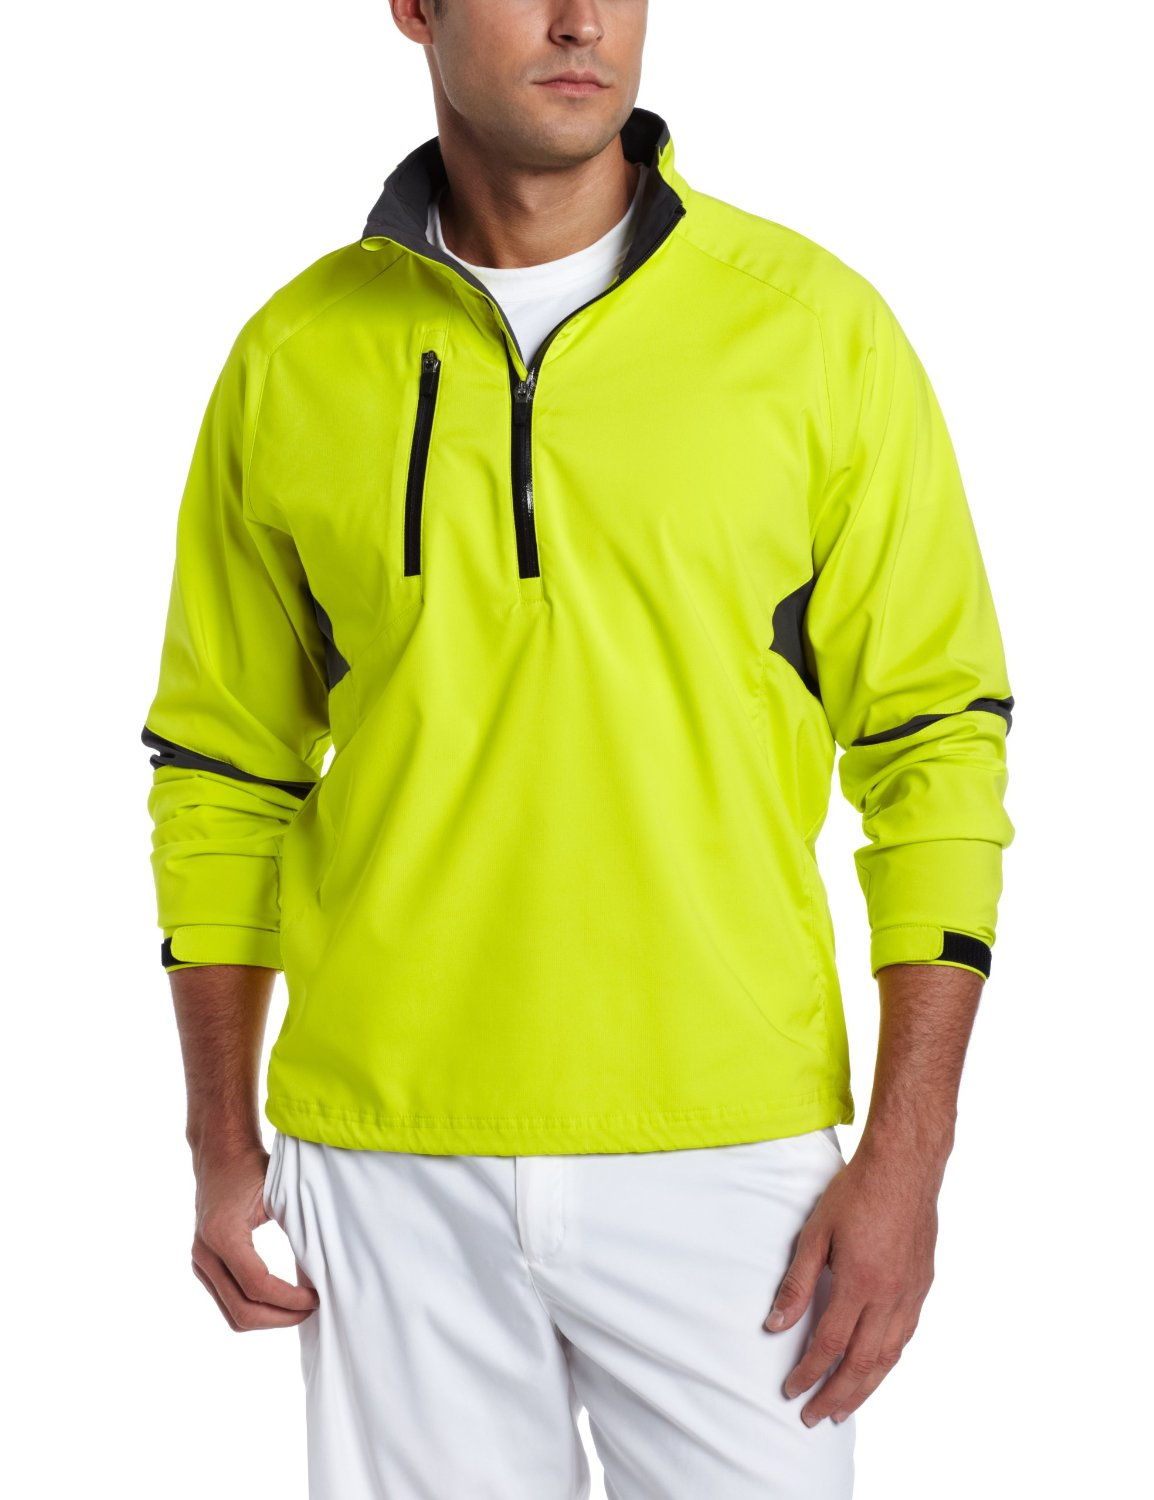 Mens Zero Restriction Cartwright Golf Windshirts